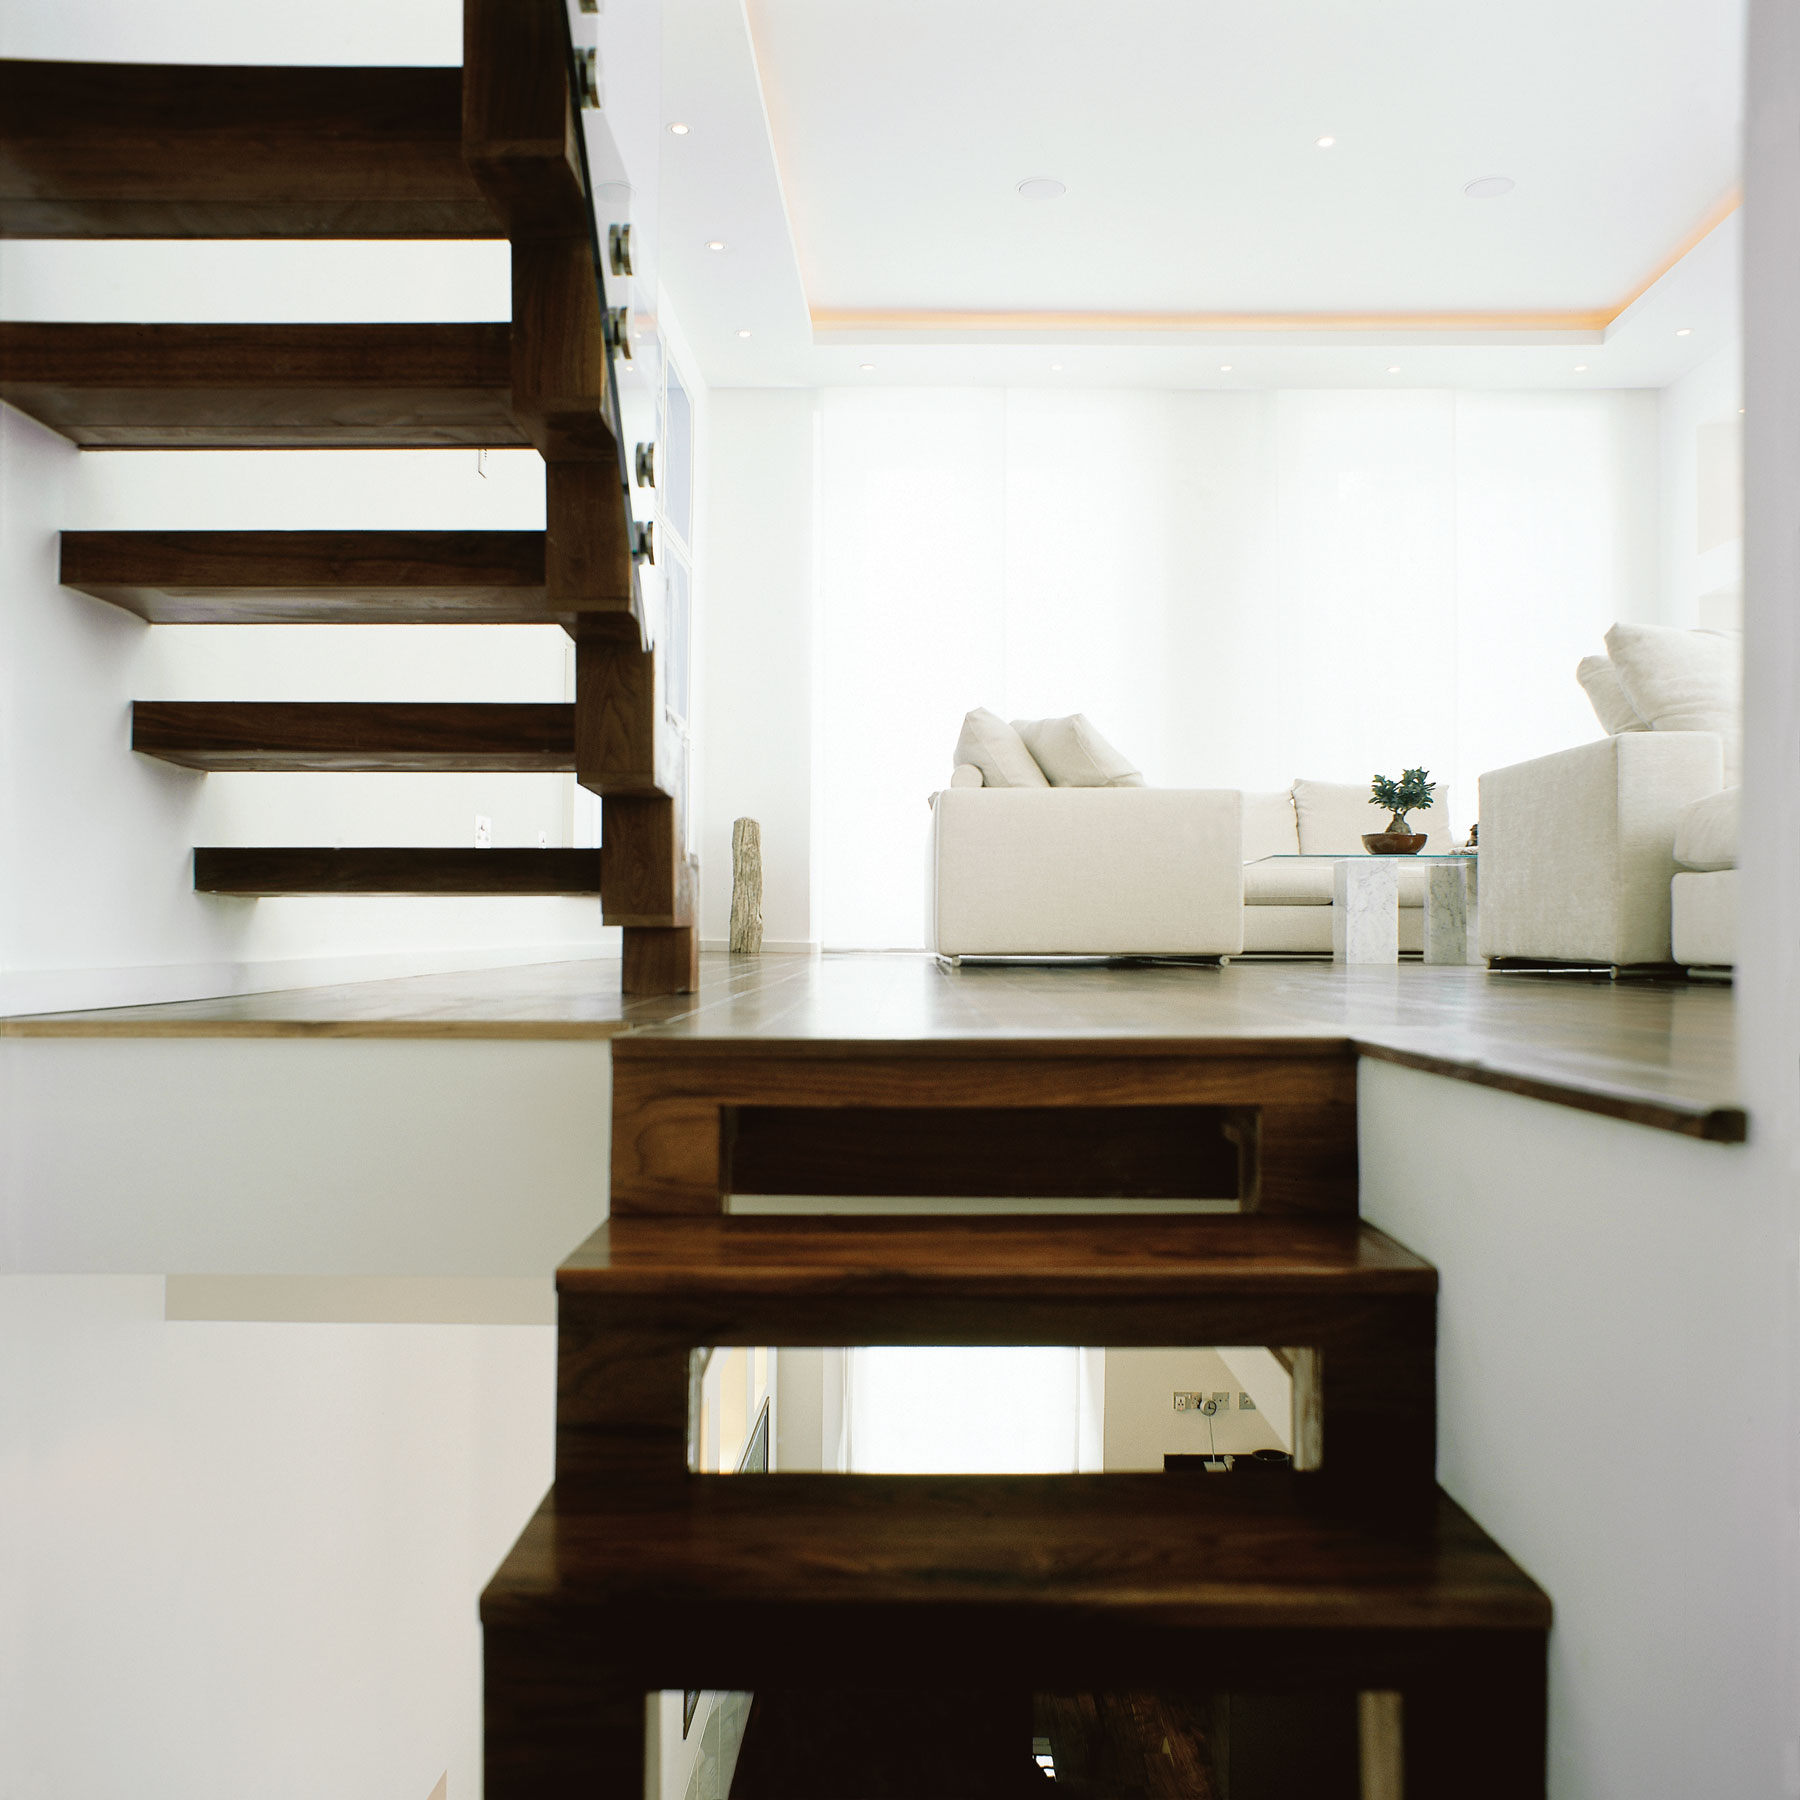 Wooden staircases leading to living area